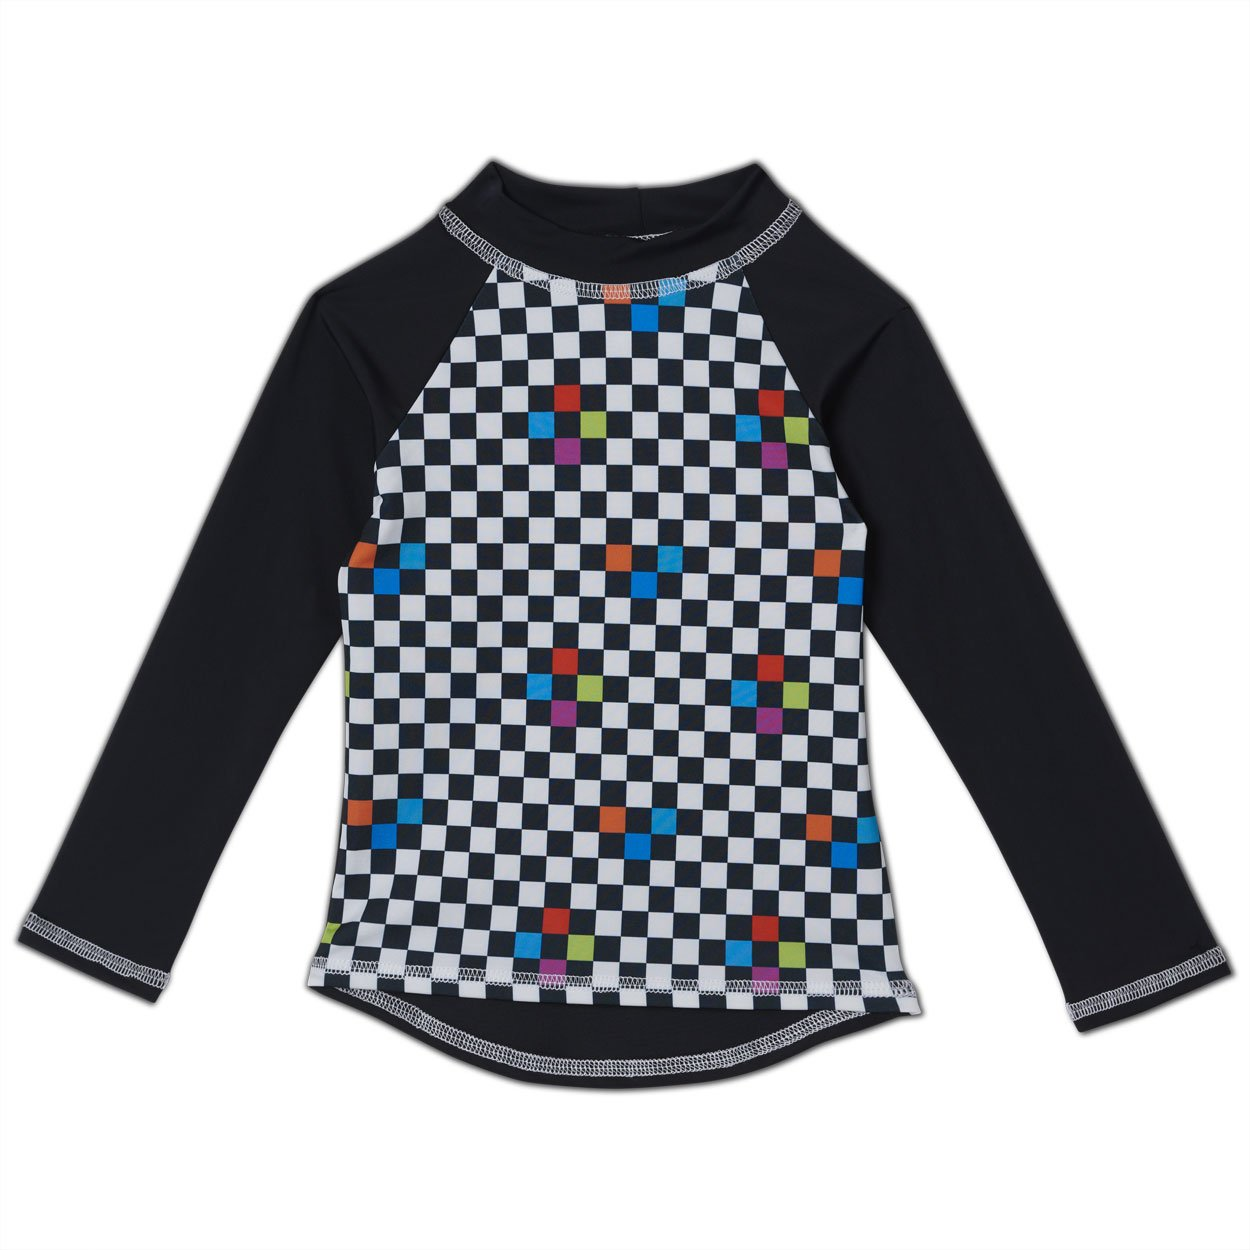 Checkerboard Long Sleeve Rash Guard Top UPF 50+ for Kids